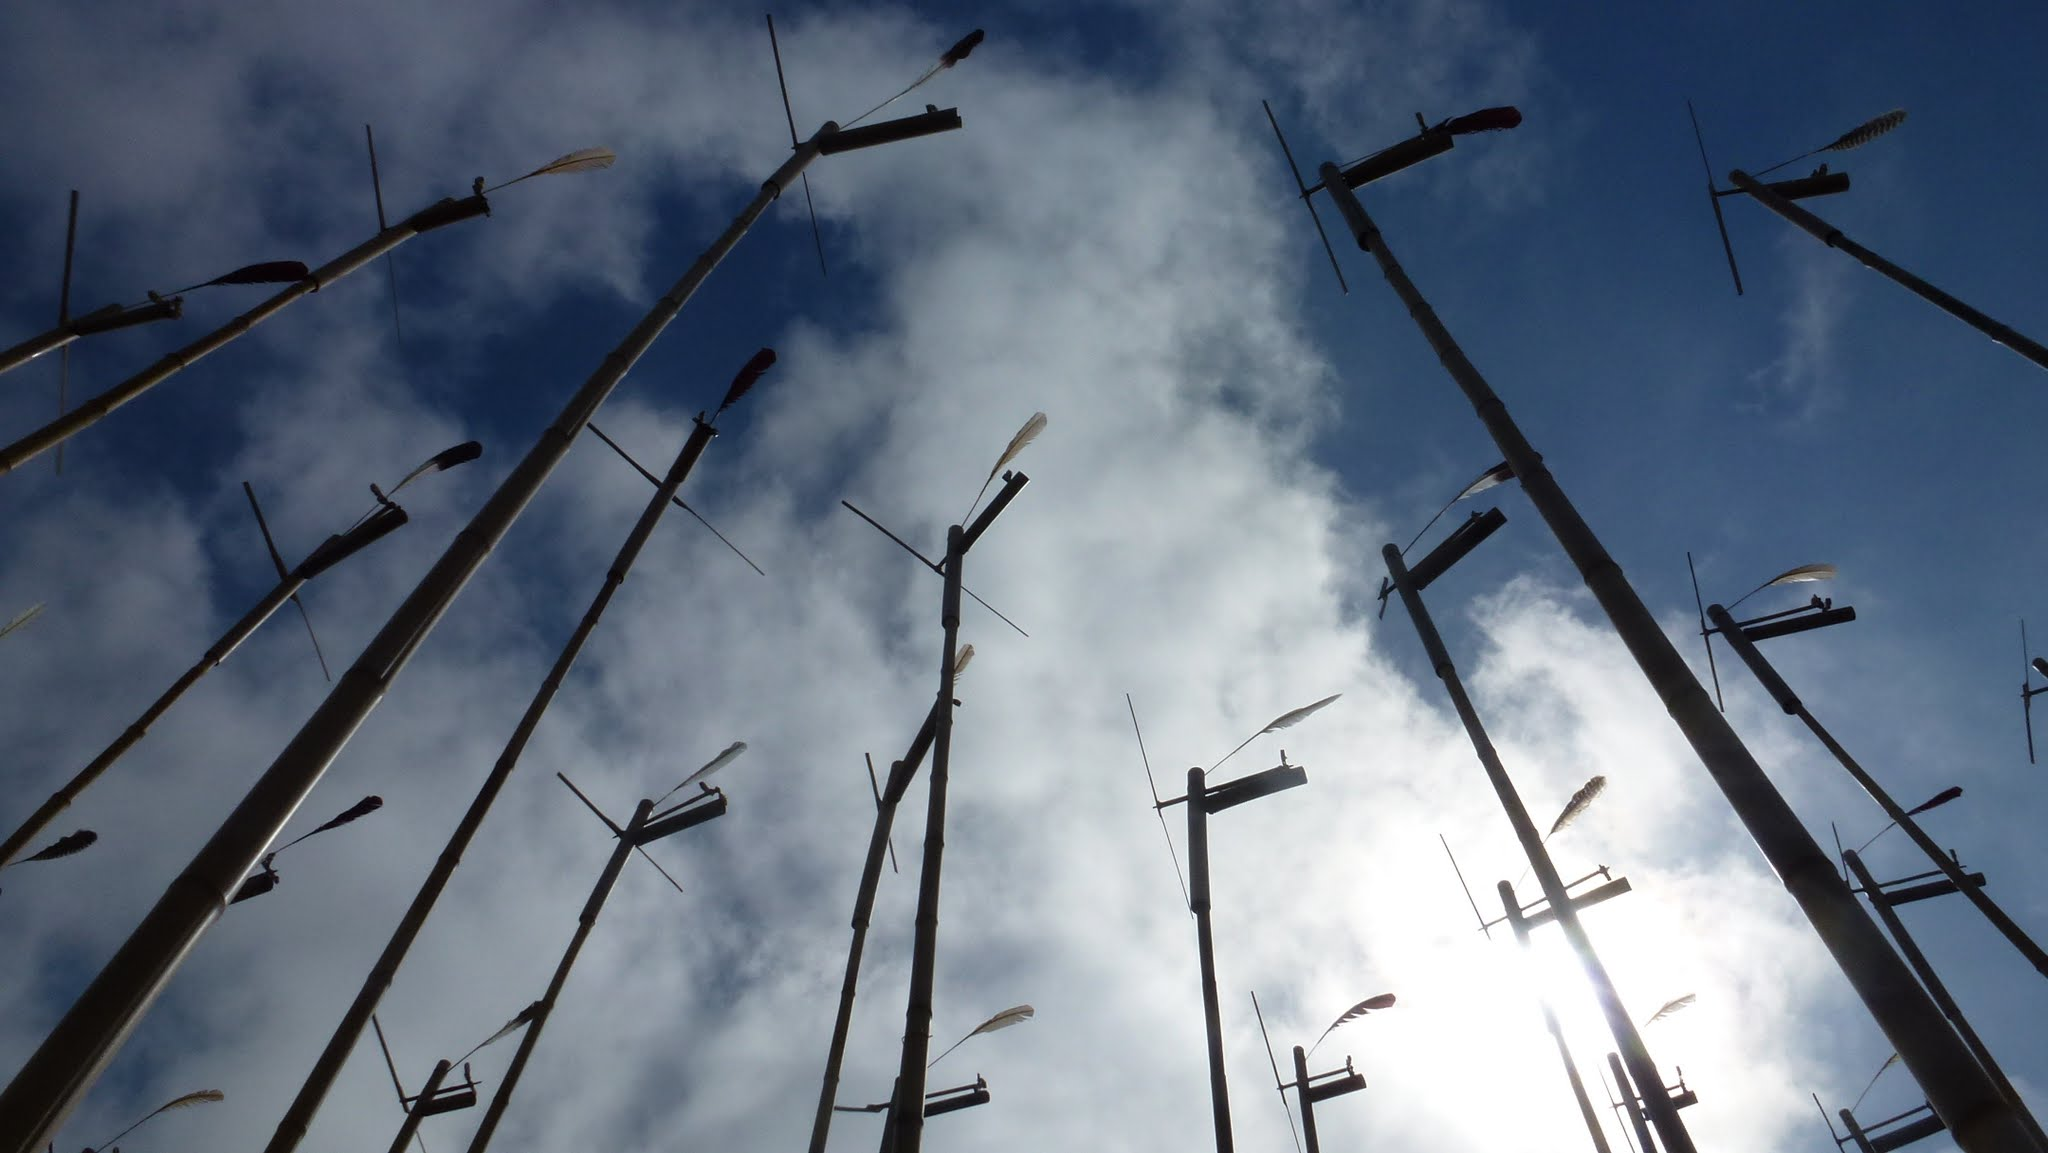 Looking upwards at multiple small windmills mounted on bamboo poles